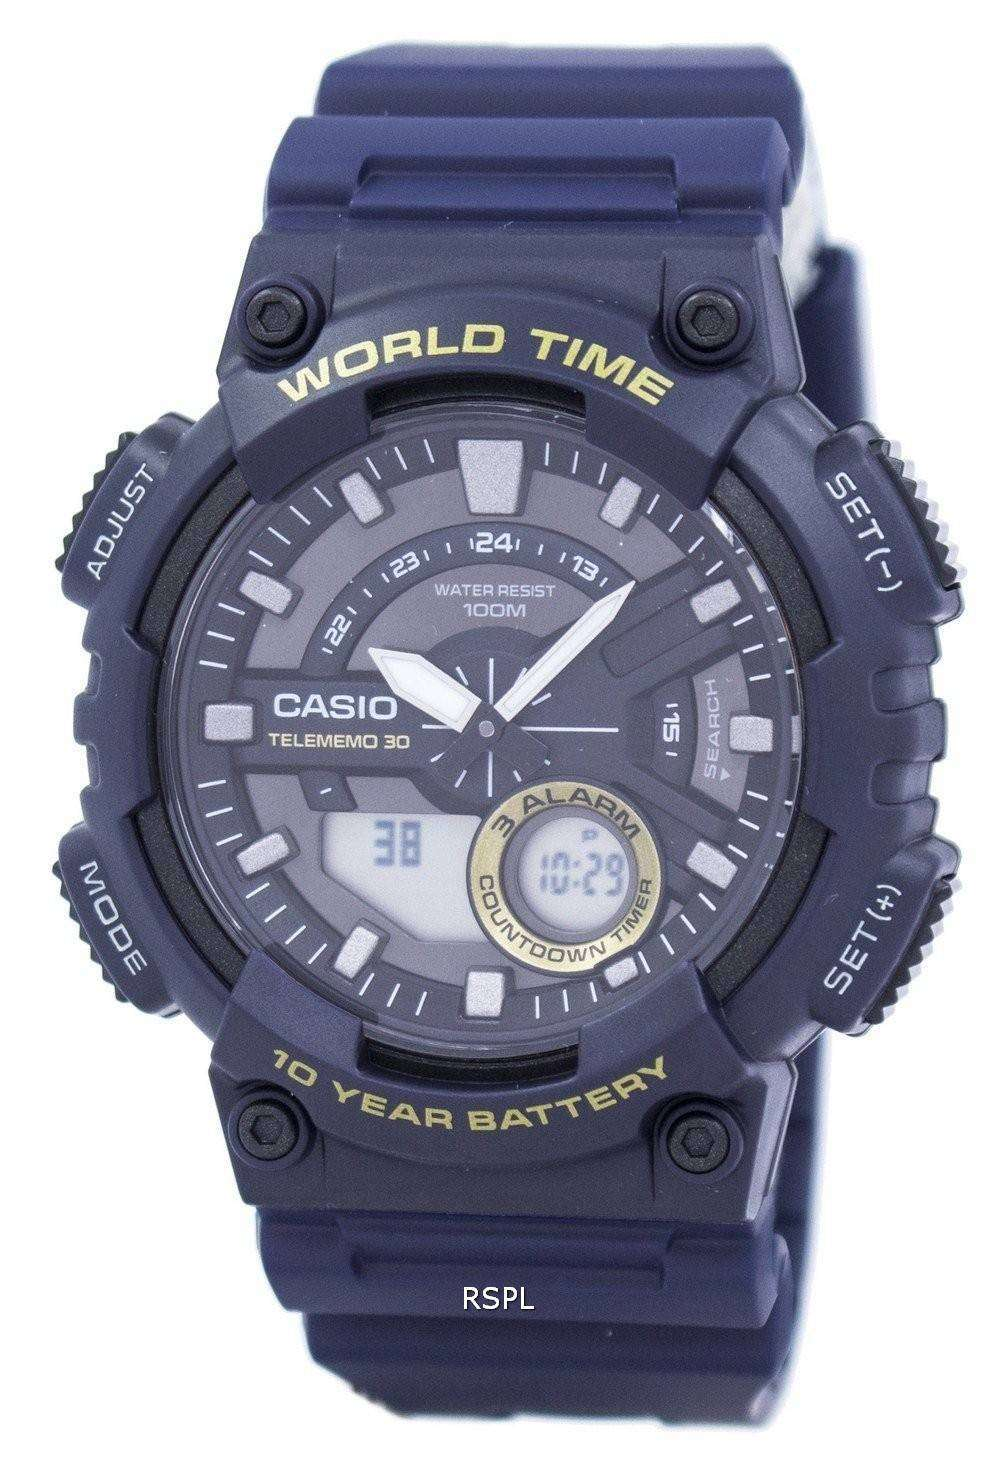 c8b12fdcab4 Casio Telememo 30 World Time Alarm Analog Digital AEQ-110W-2AV Men s Watch